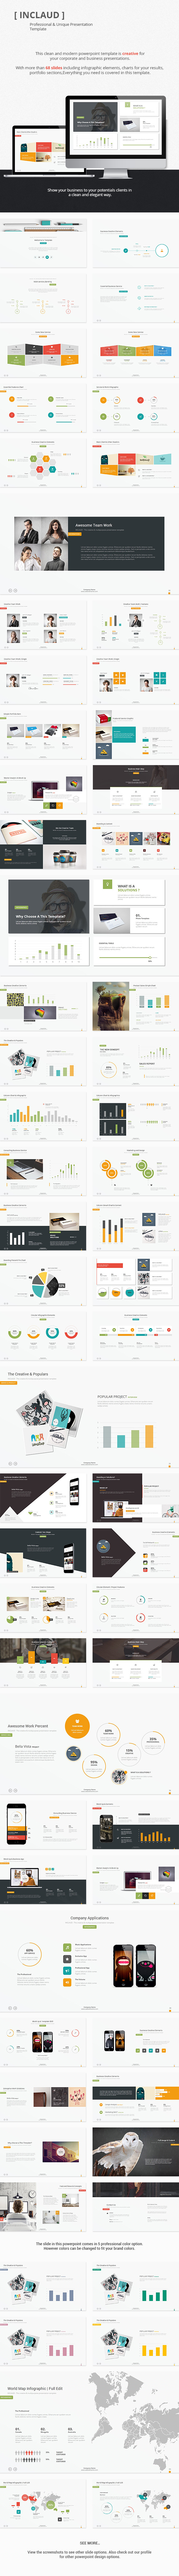 GraphicRiver Claude Clean & Professional Template 10137105